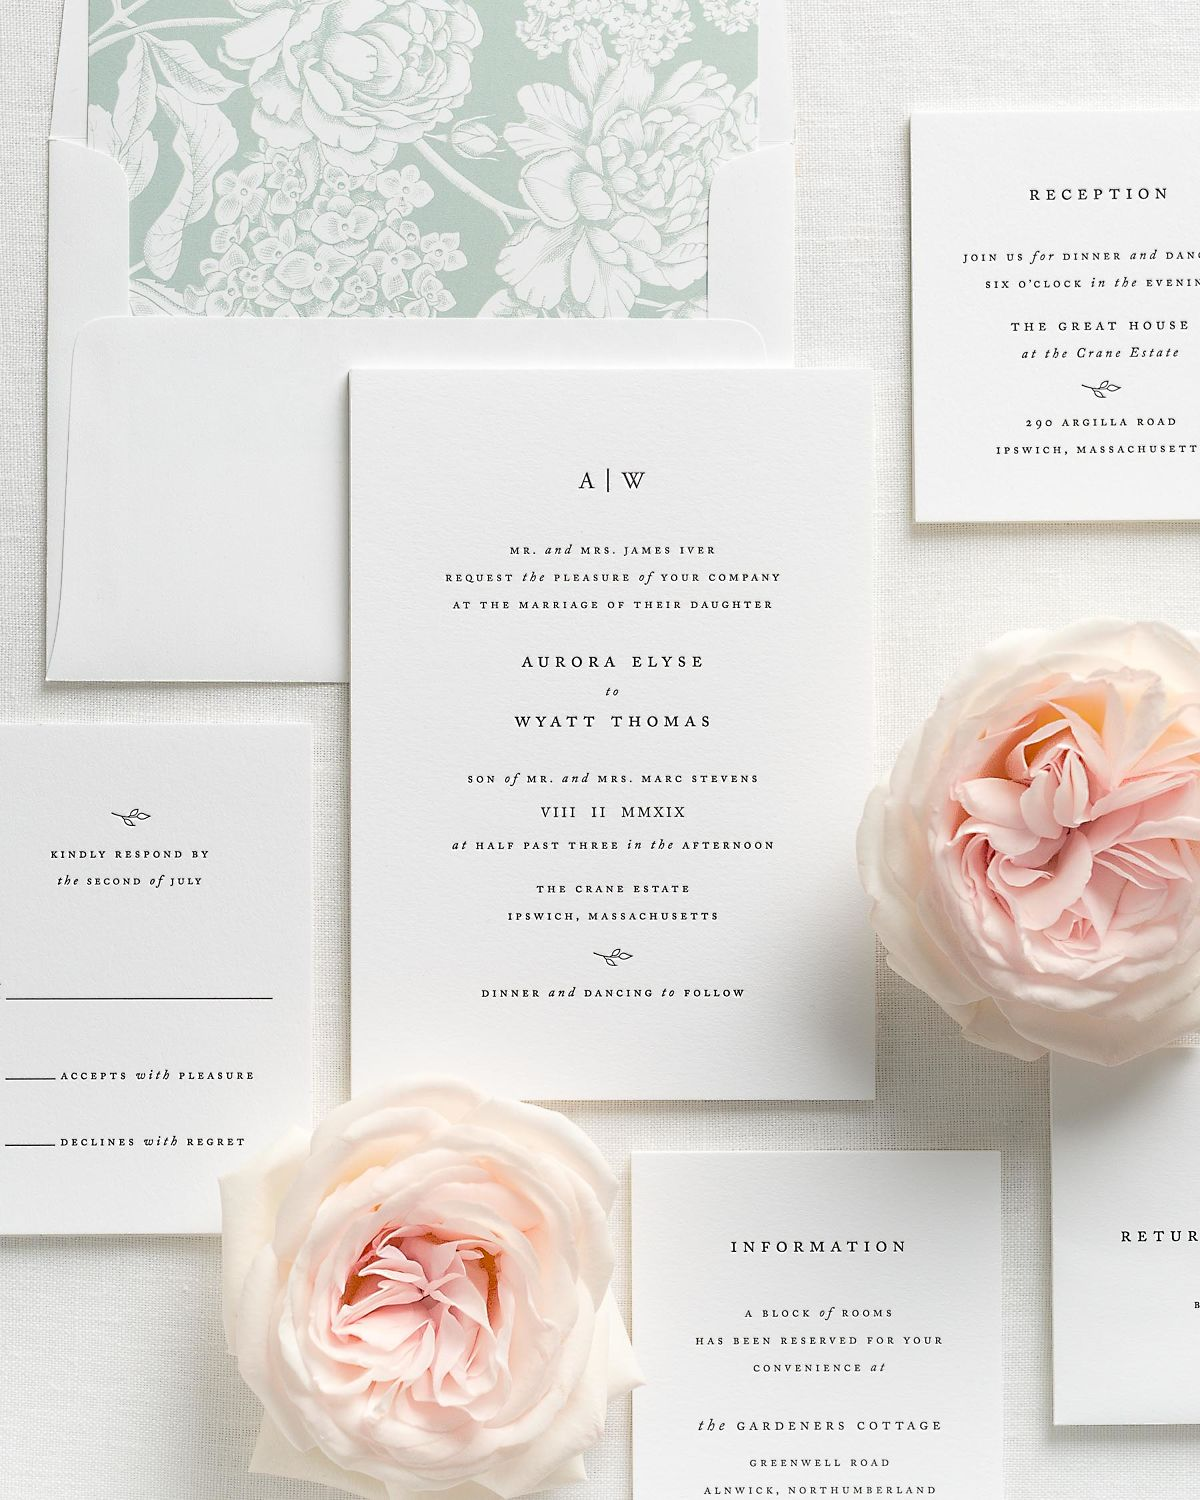 Letterpress Wedding Invitations with Sea Salt Hydrangea Envelope Liner and Matching Accessories